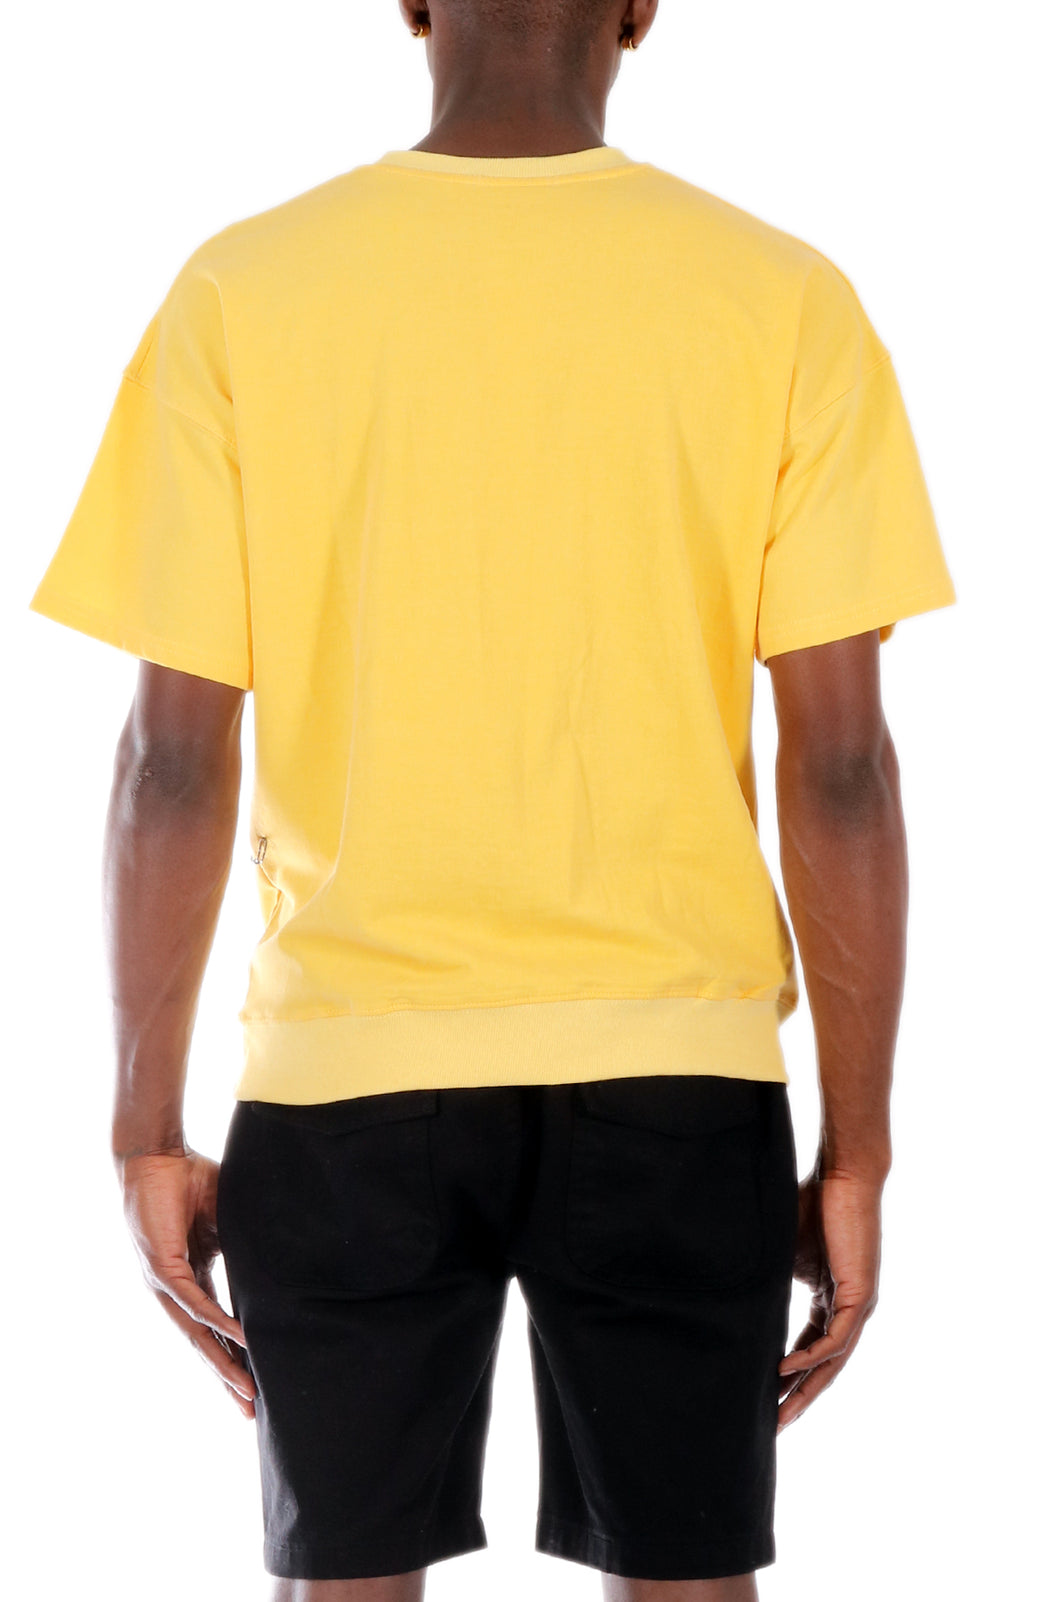 Allston Outfitter Pastel Color Terry Short Sleeve Crew Neck Pull Over Top in Pastel Yellow